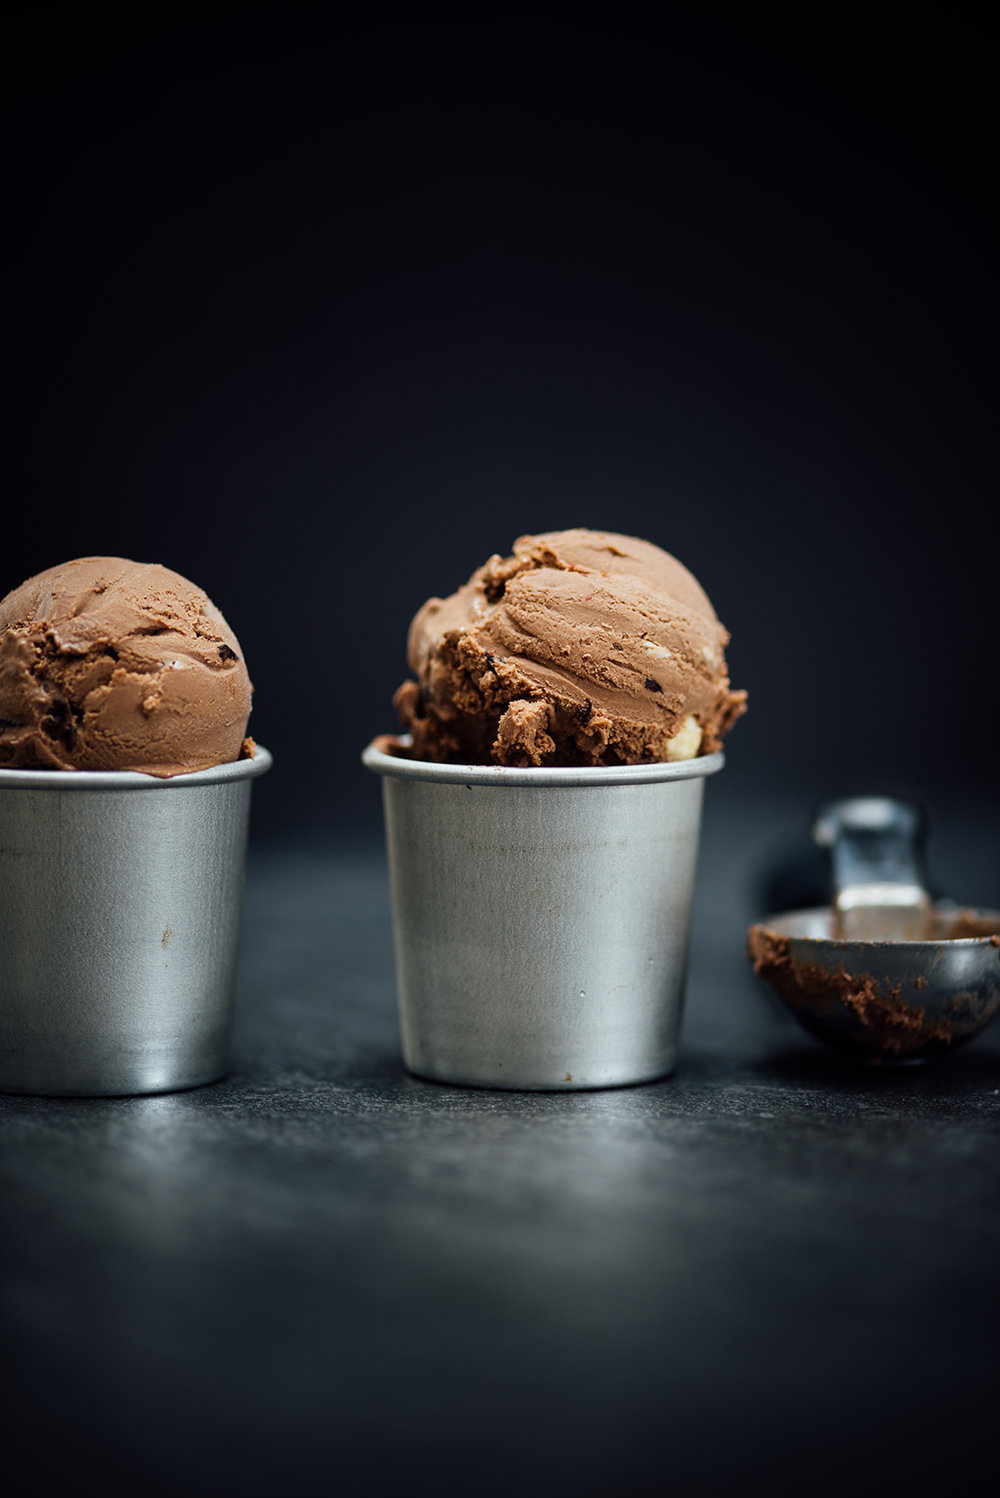 spiced chocolate fruit and nut ice cream|Nik Sharma for Guittard Chocolate